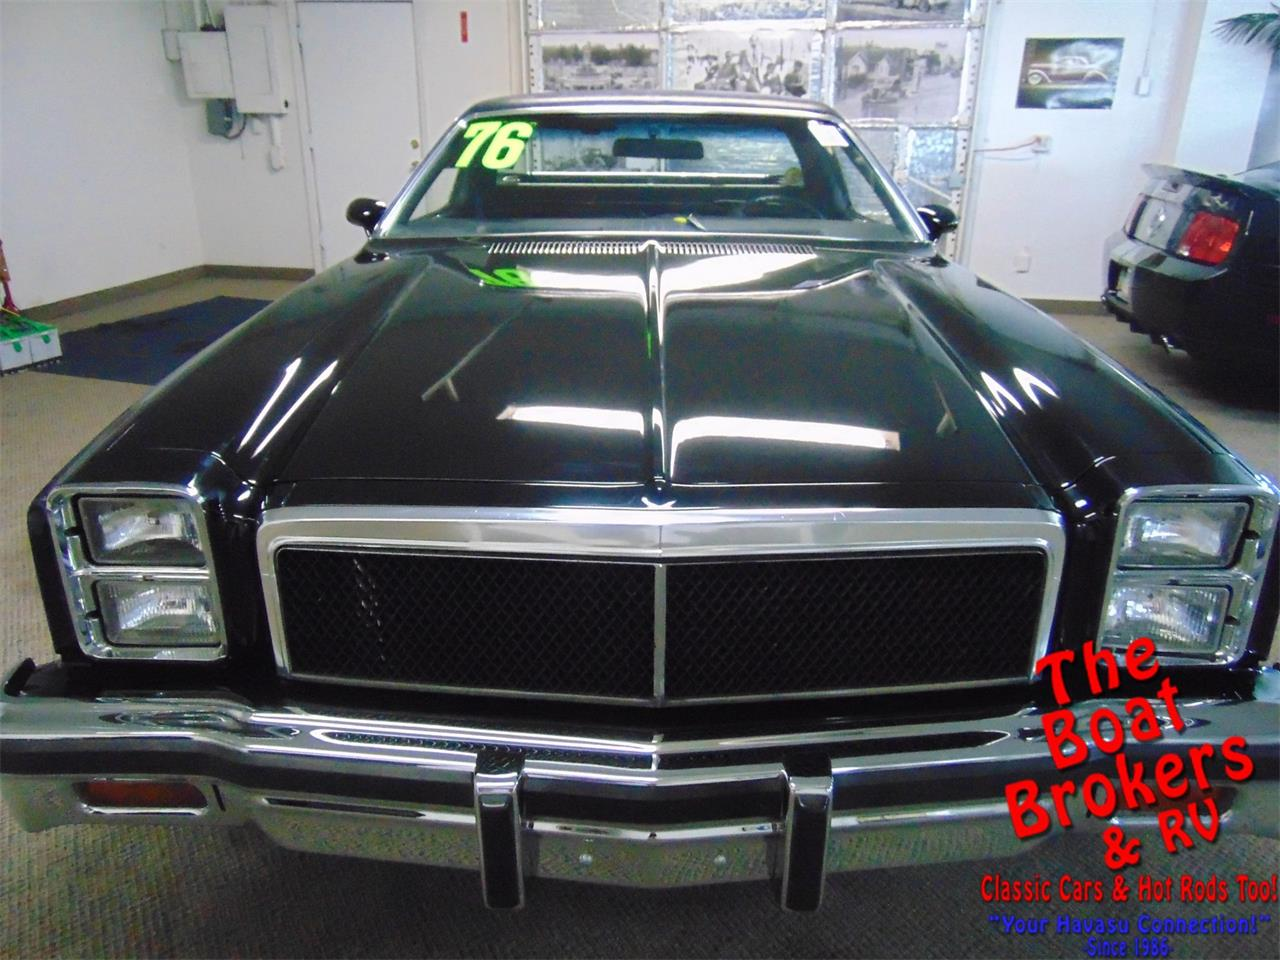 Large Picture of '76 Chevrolet El Camino - $26,995.00 Offered by The Boat Brokers - QC26